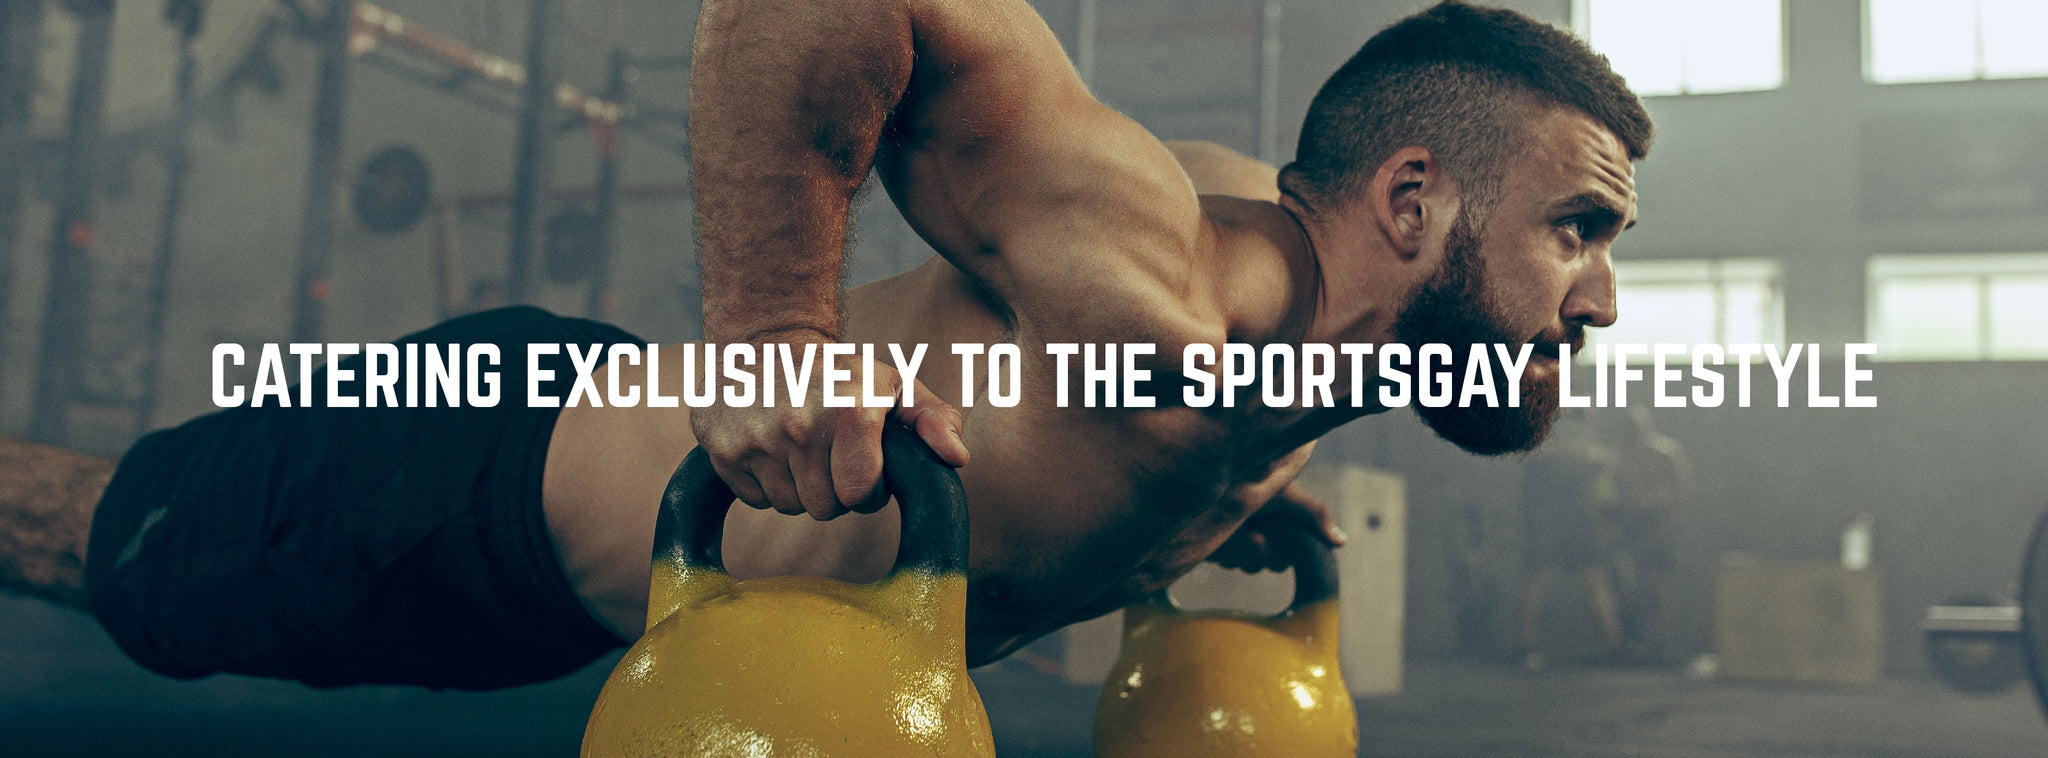 Welcome to Sportsgaywear.com - The Ultimate Provider of the Sports Gay Lifestyle.